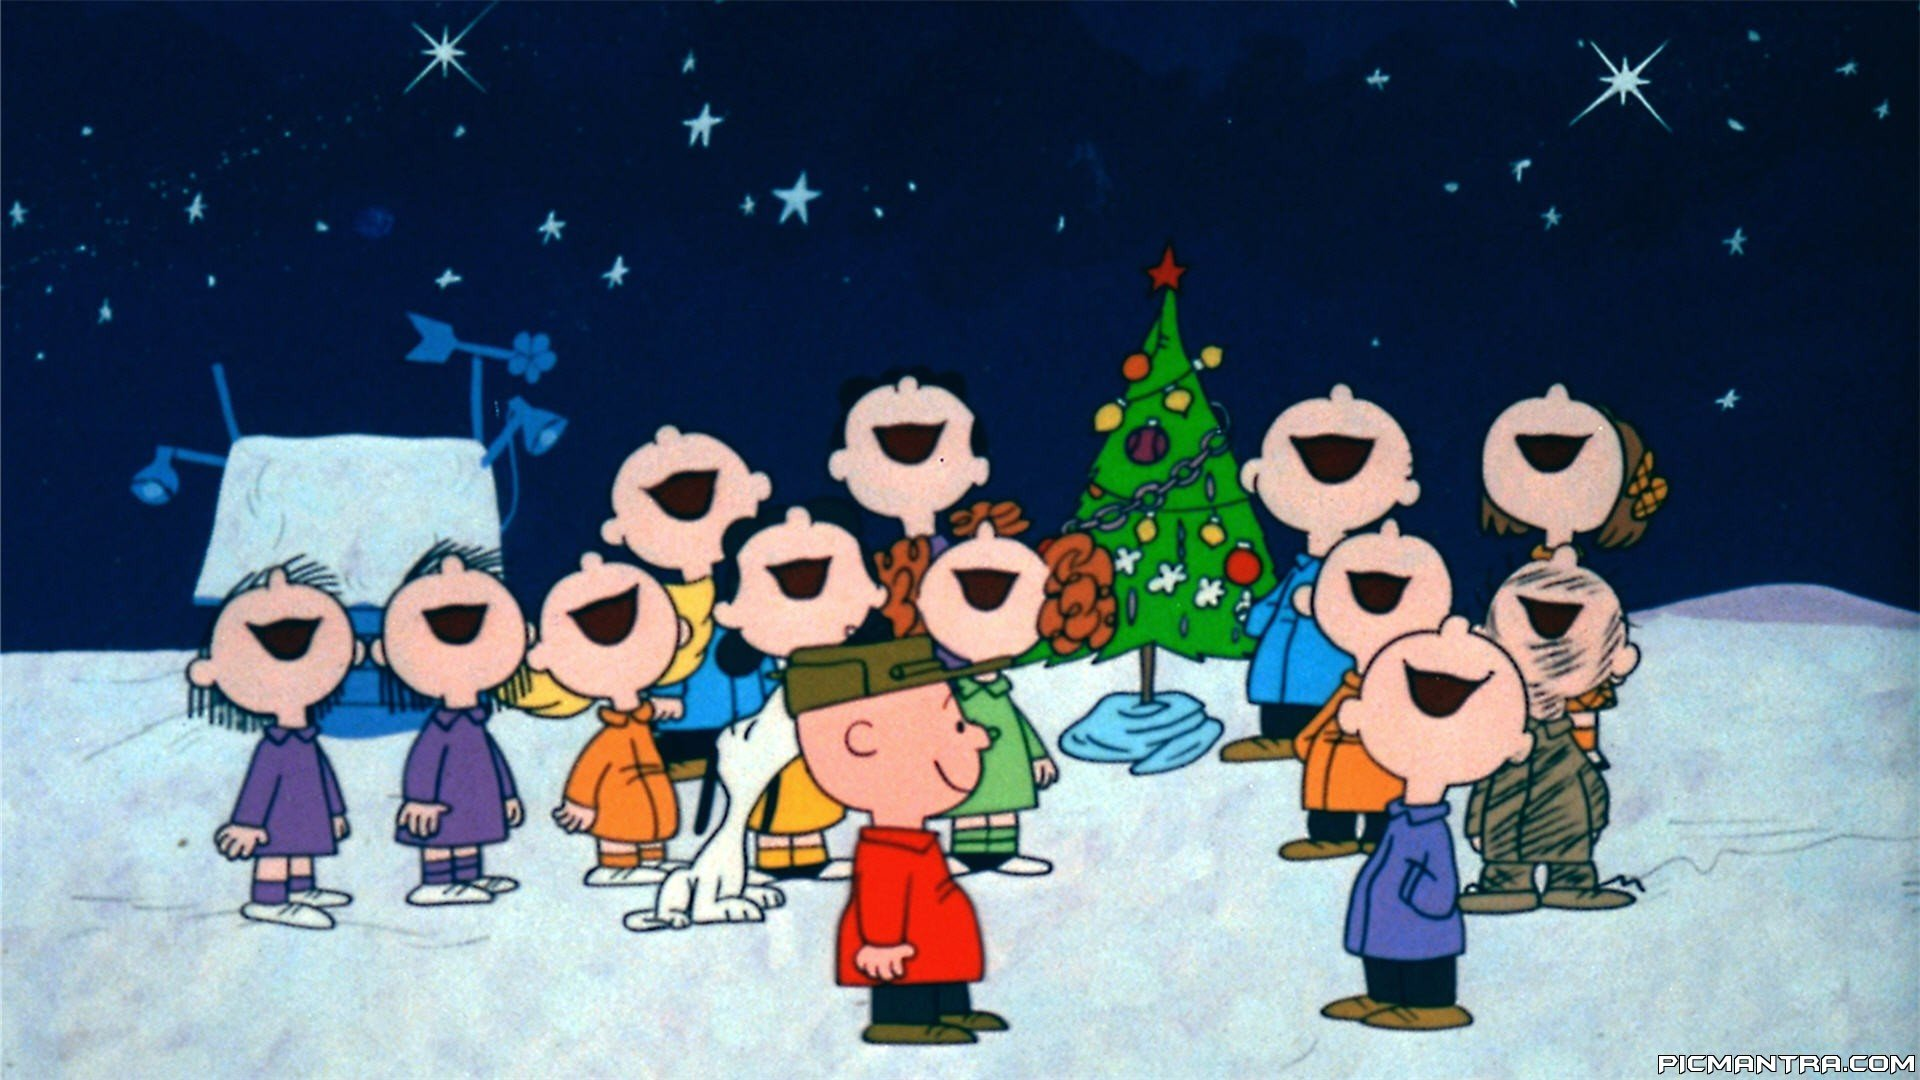 Charlie Brown Christmas Wallpaper Hd Thecannonball Org